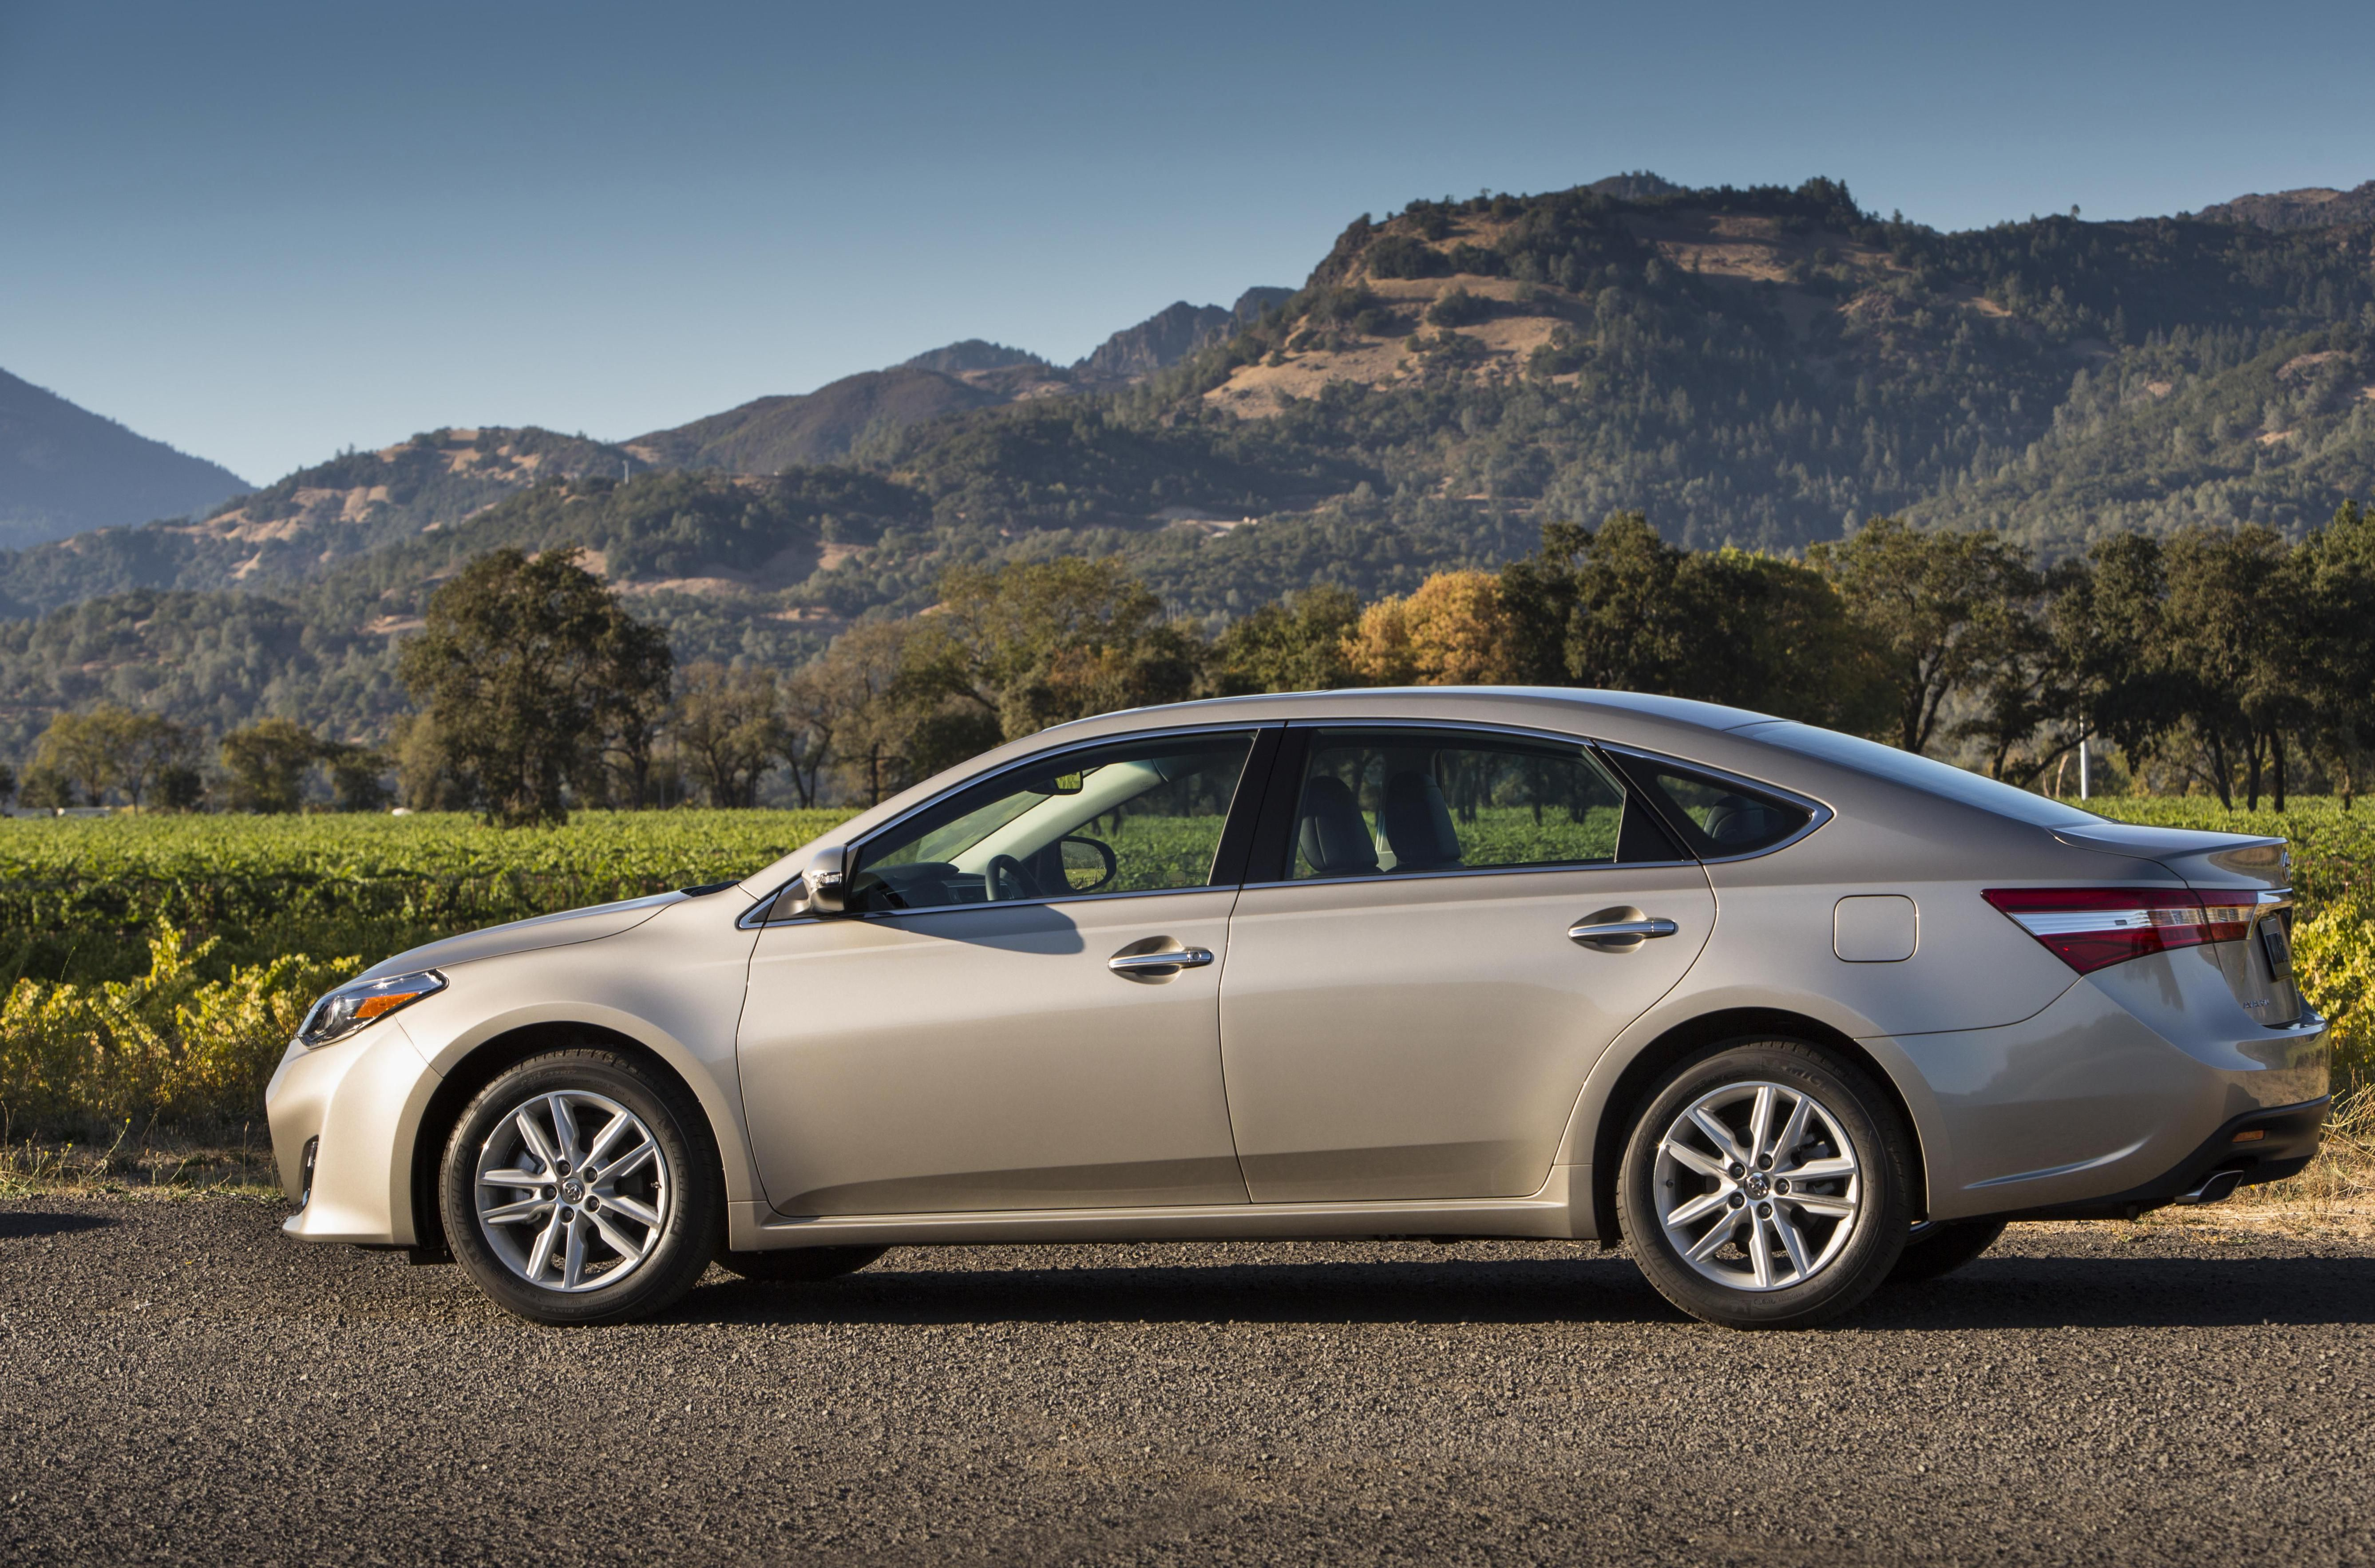 Toyota Avalon Hybrid Photos And Specs Photo Lease 22 Perfect Of